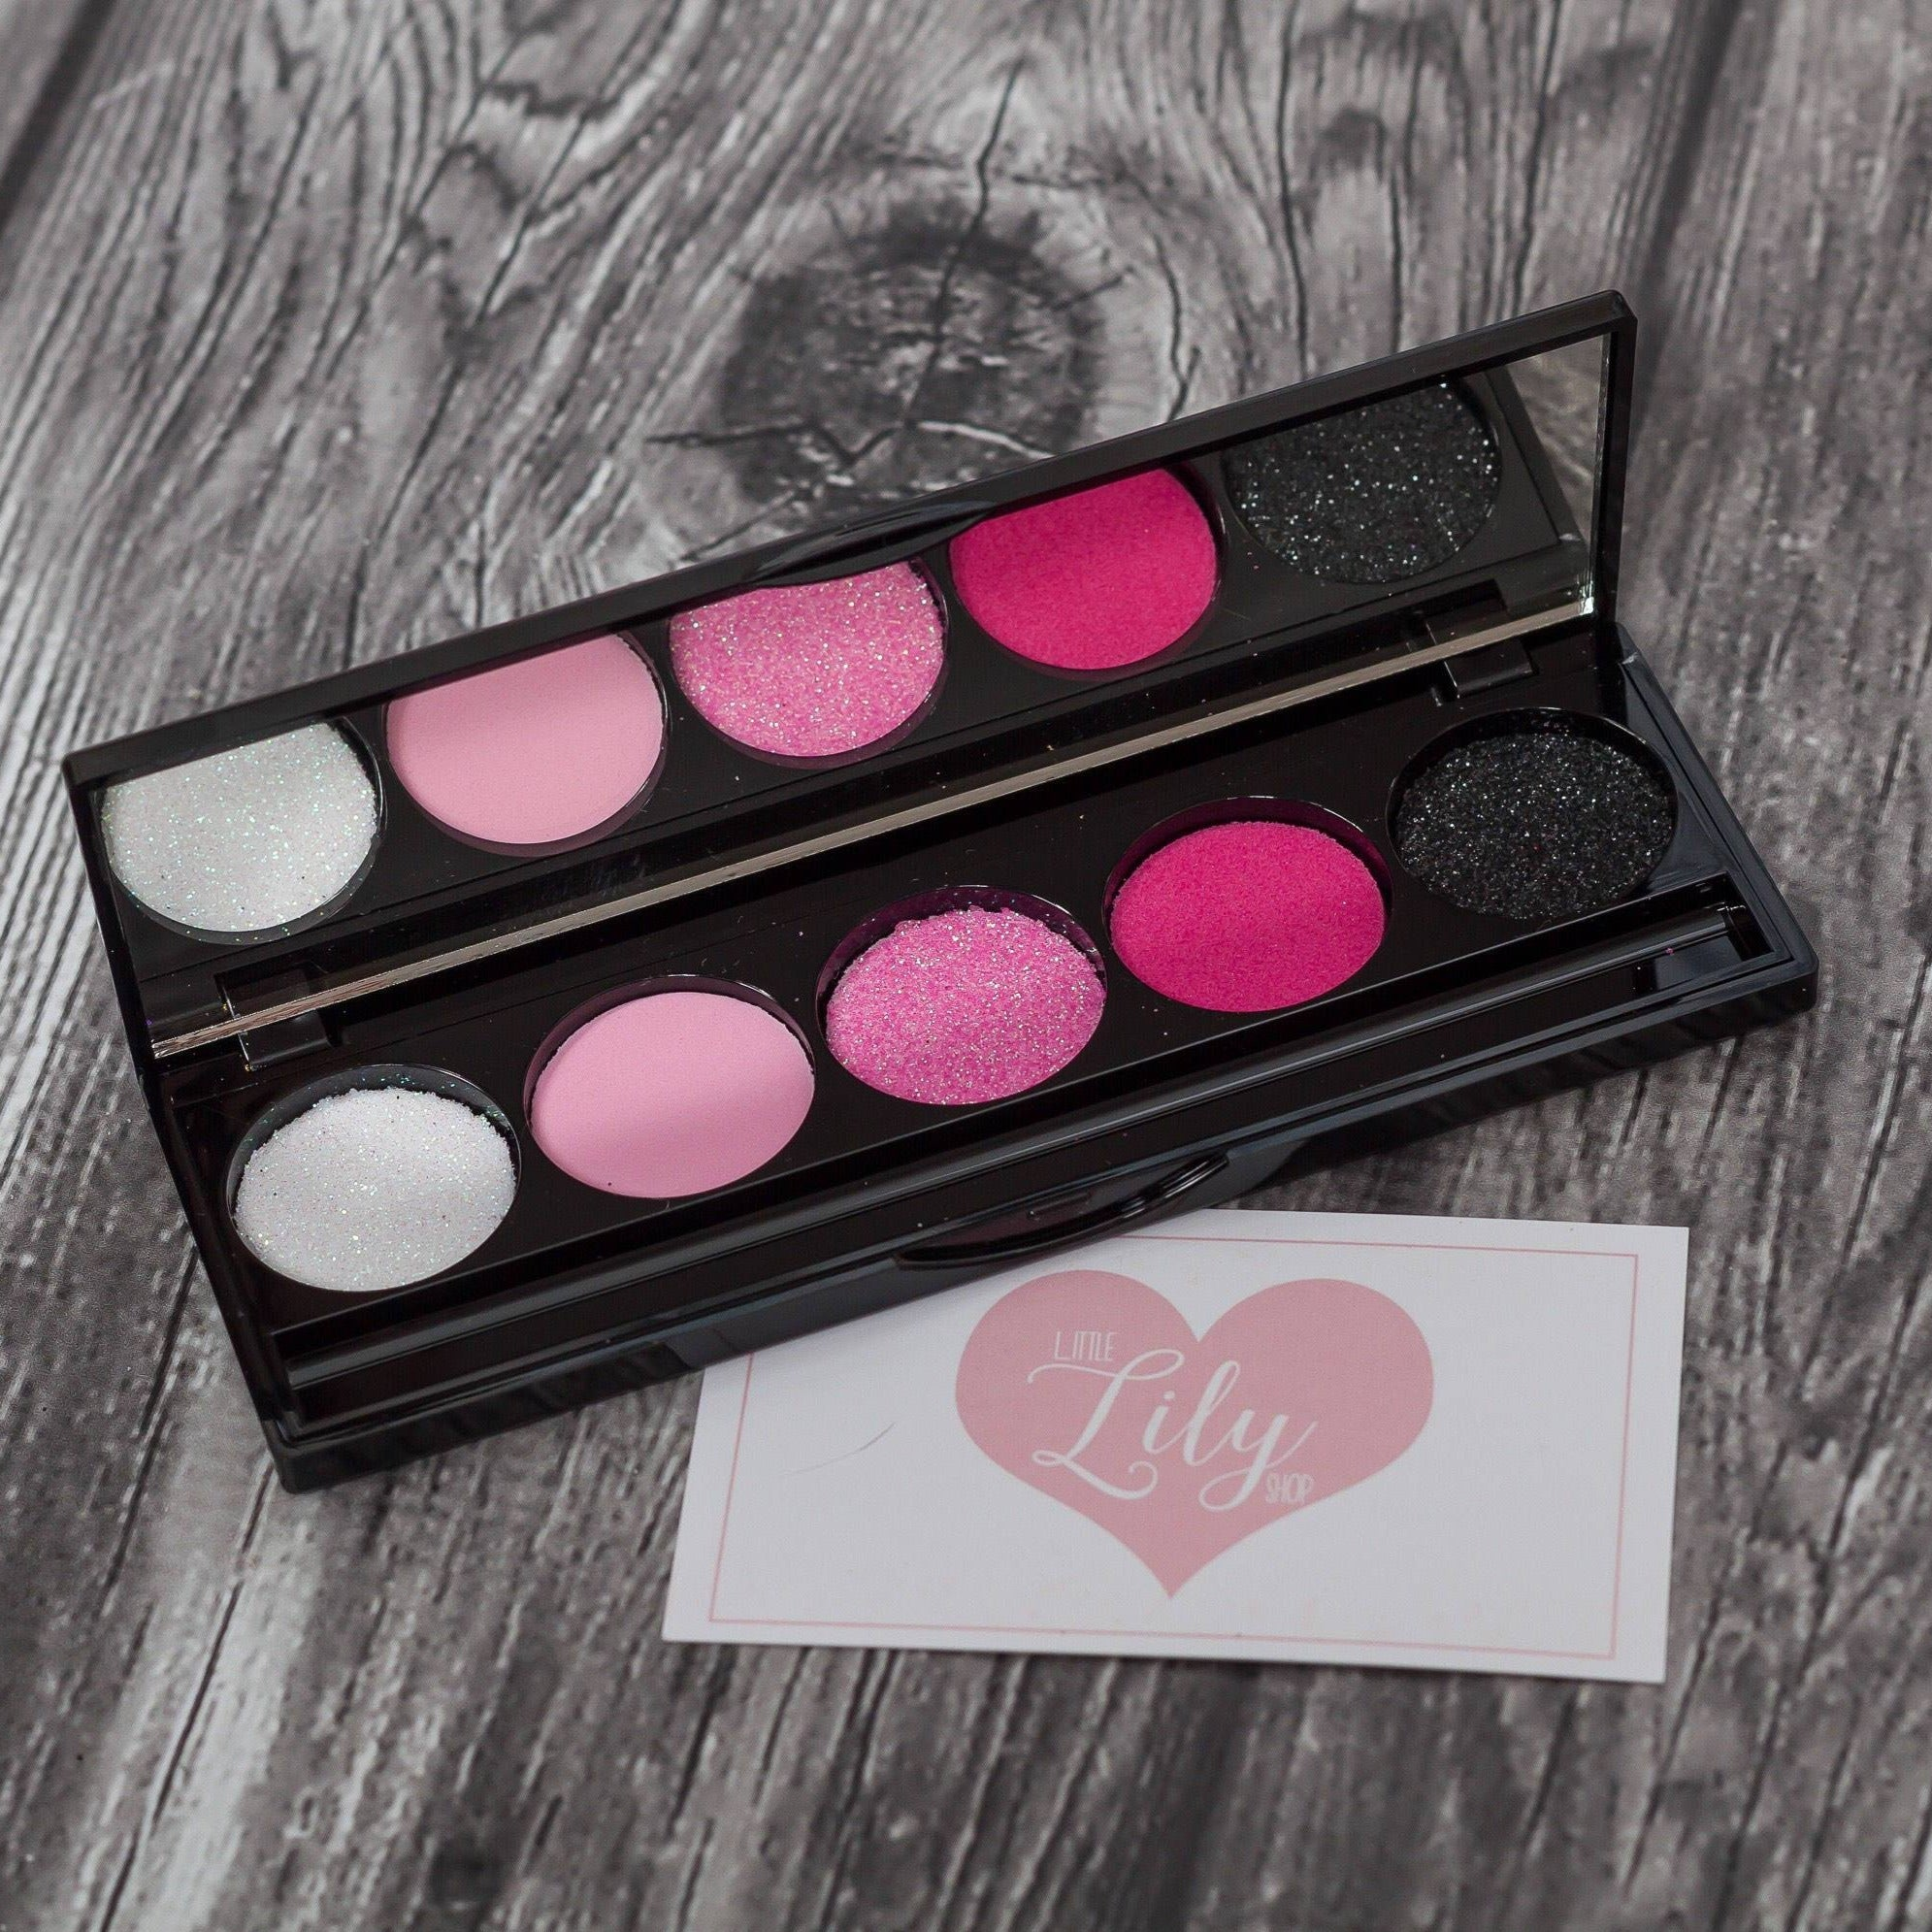 Little Lily Shop Diva Pink Eyeshadow Palette Pretend Makeup